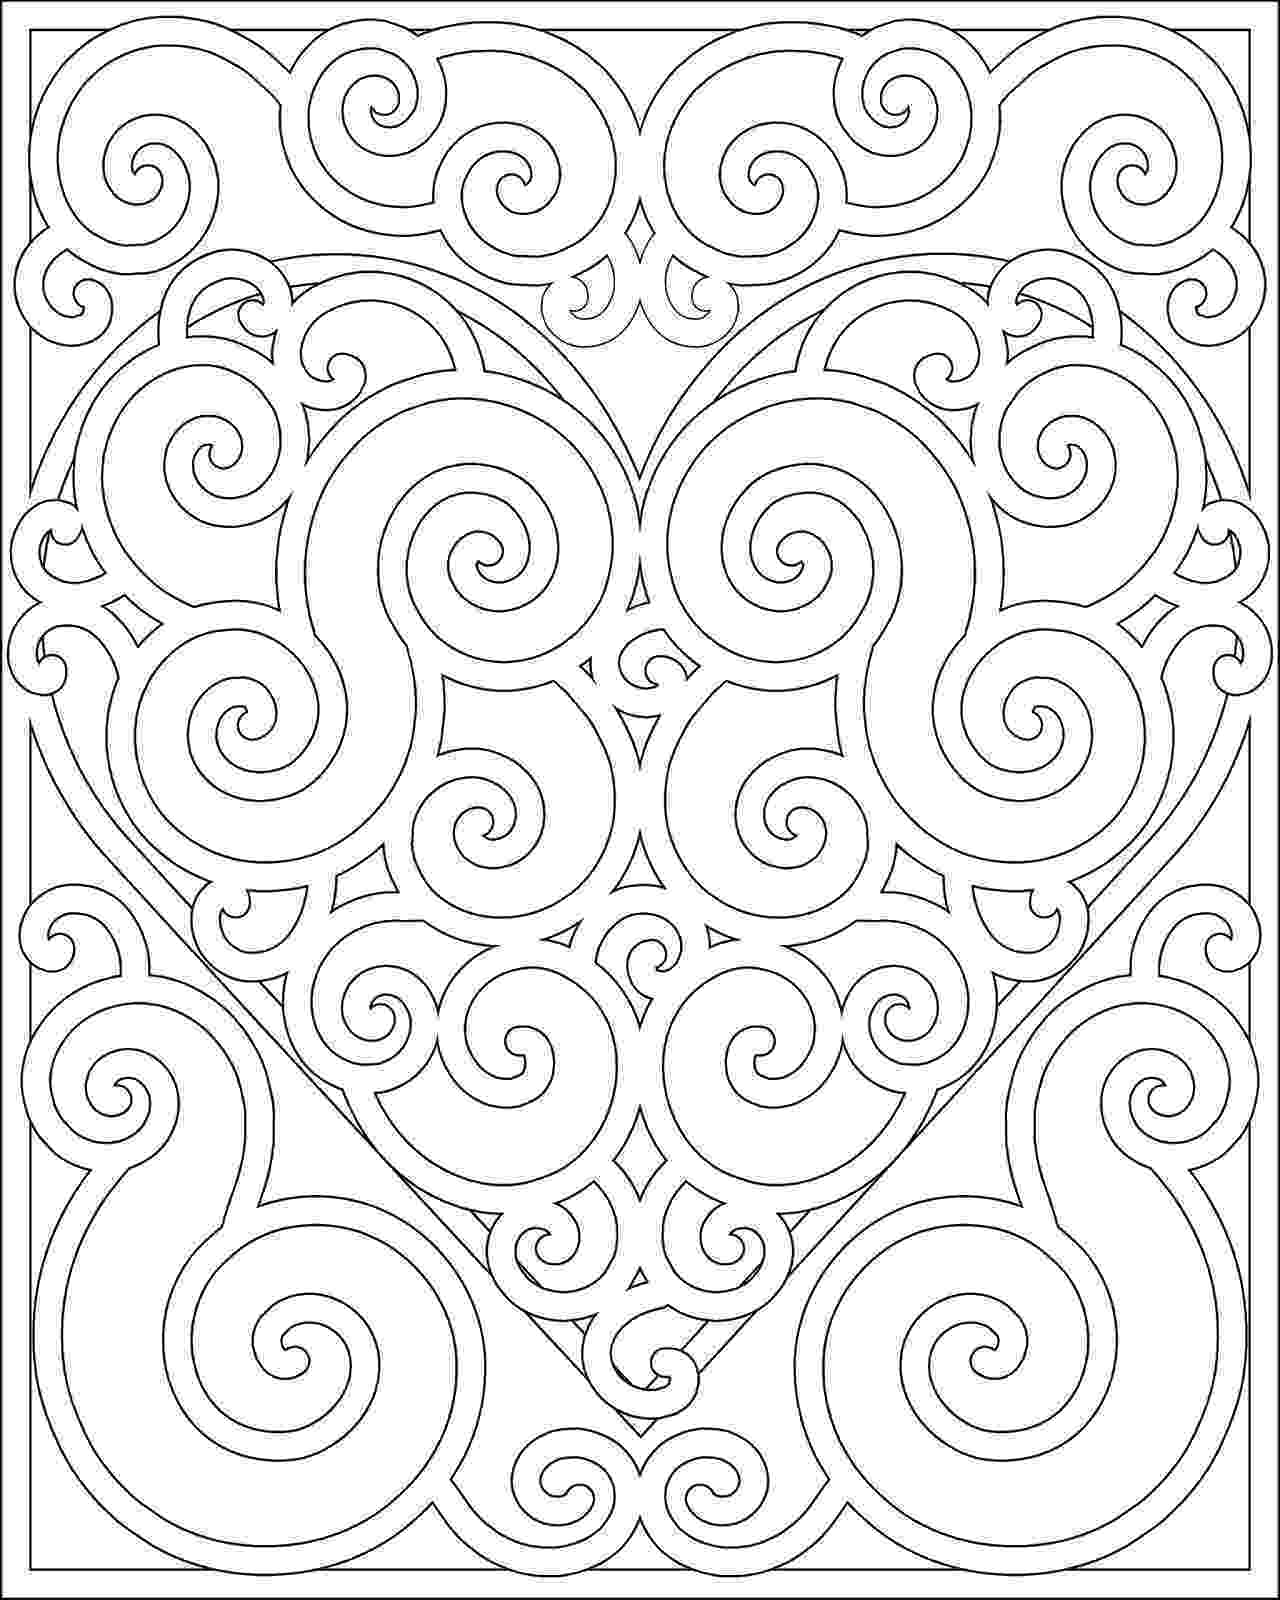 free printable pattern coloring pages hearts and stars pattern coloring page free printable printable free pattern coloring pages